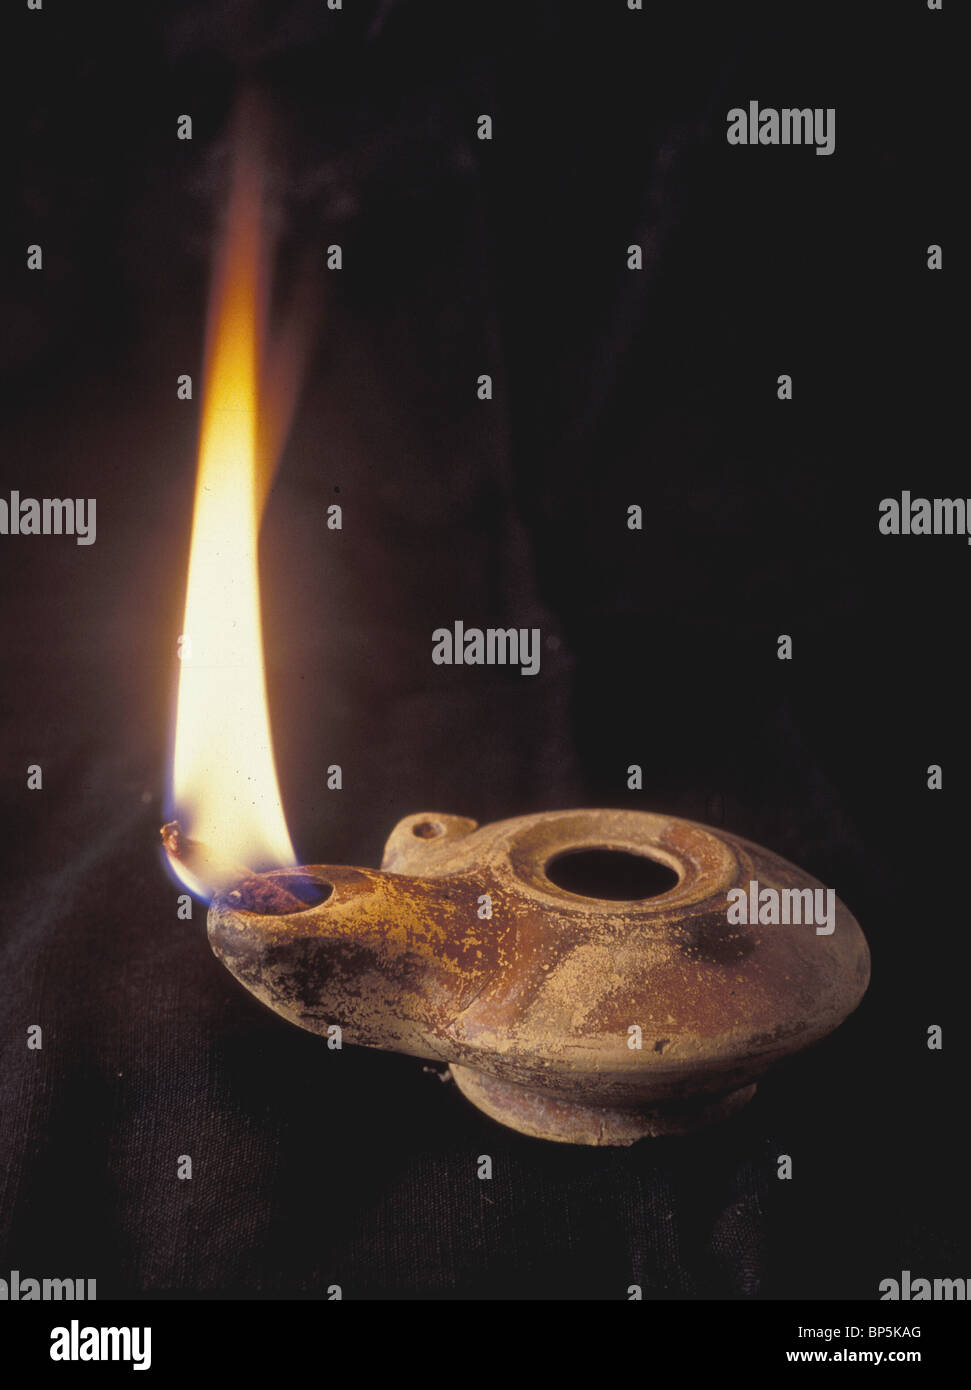 5005. HELENISTIC PERIOD OIL LAMP - Stock Image